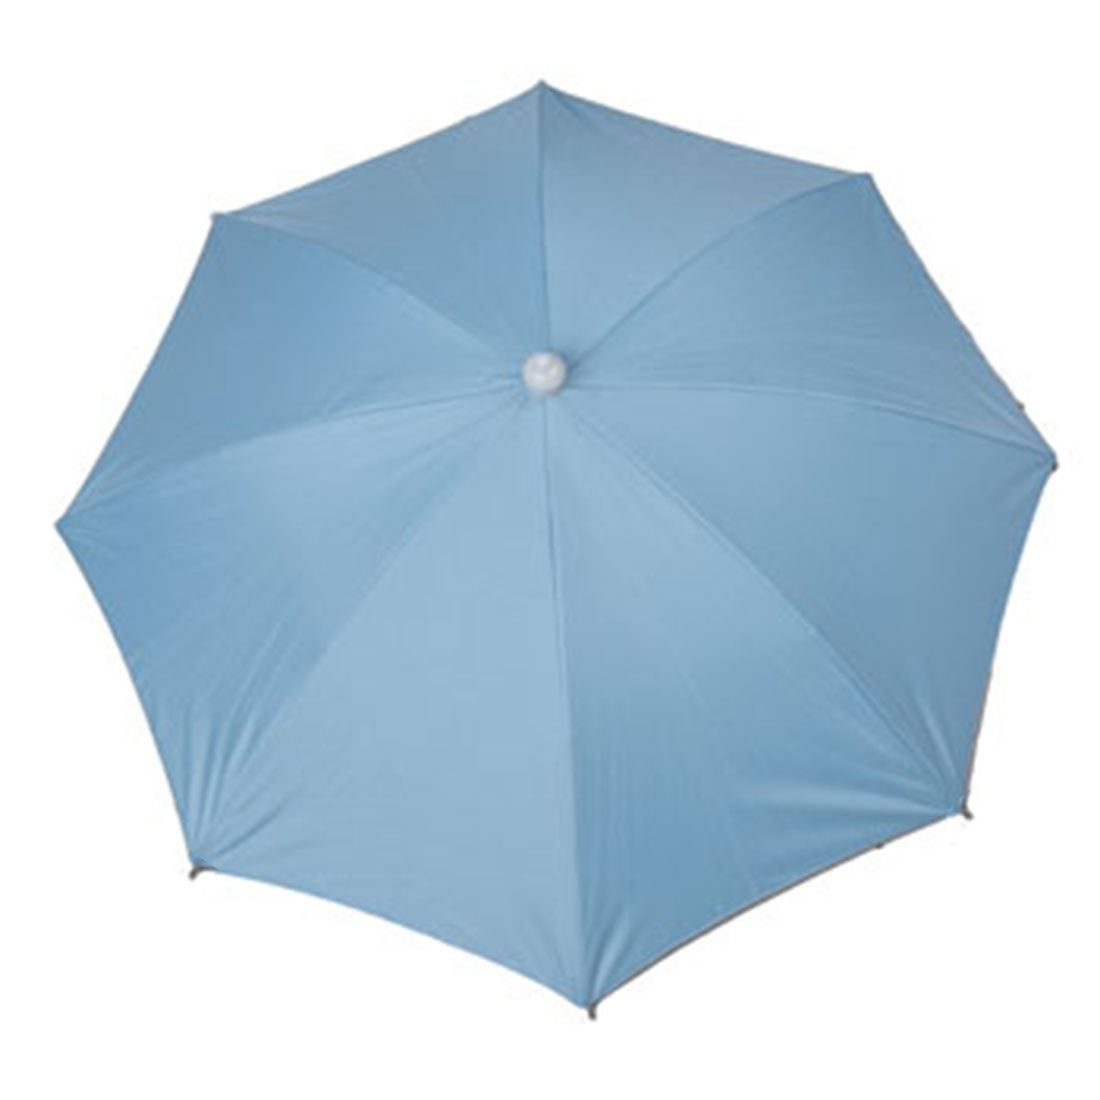 Metal Frame Hands Free Baby Blue Foldable Fishing Umbrella Hat